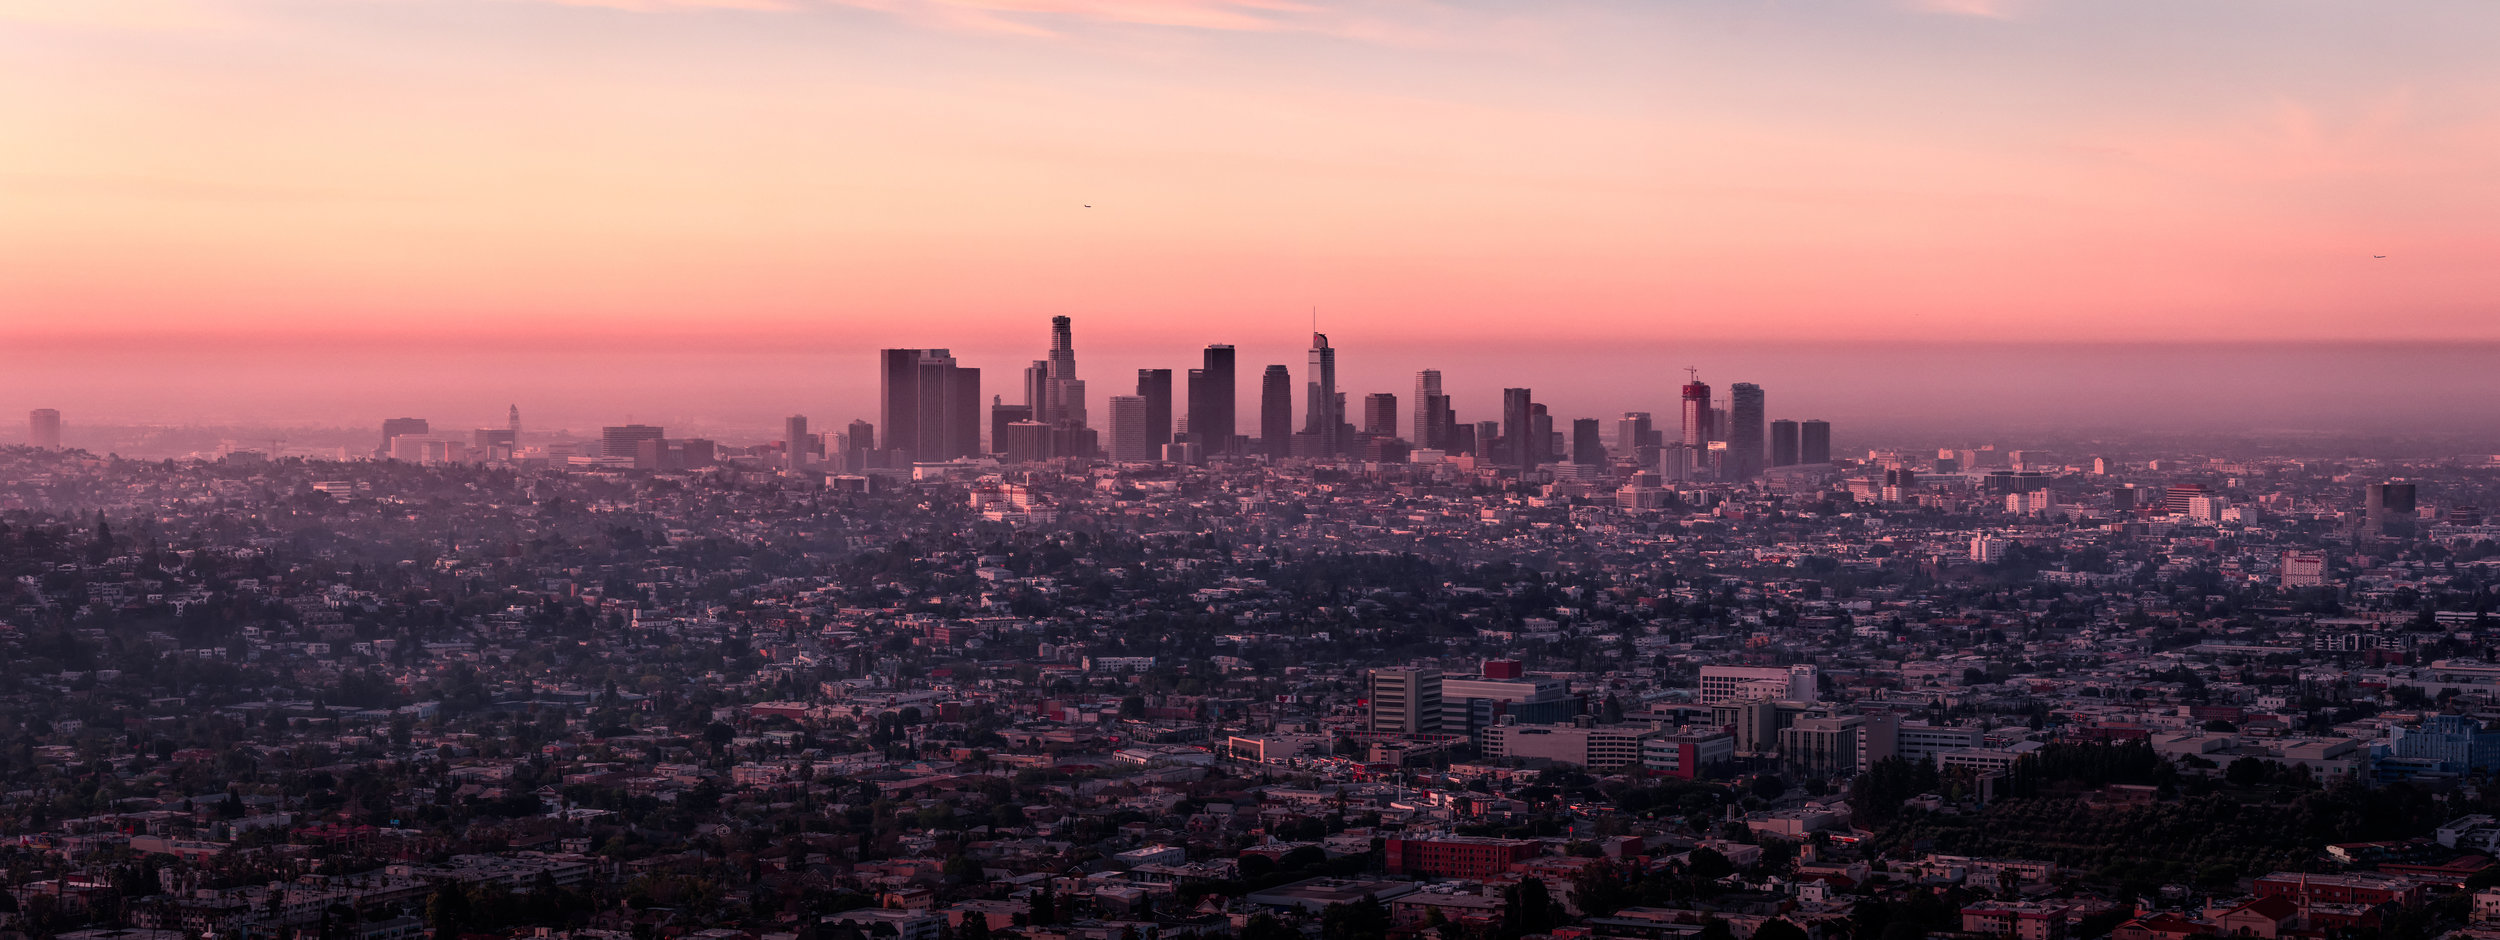 The Los Angeles Standard